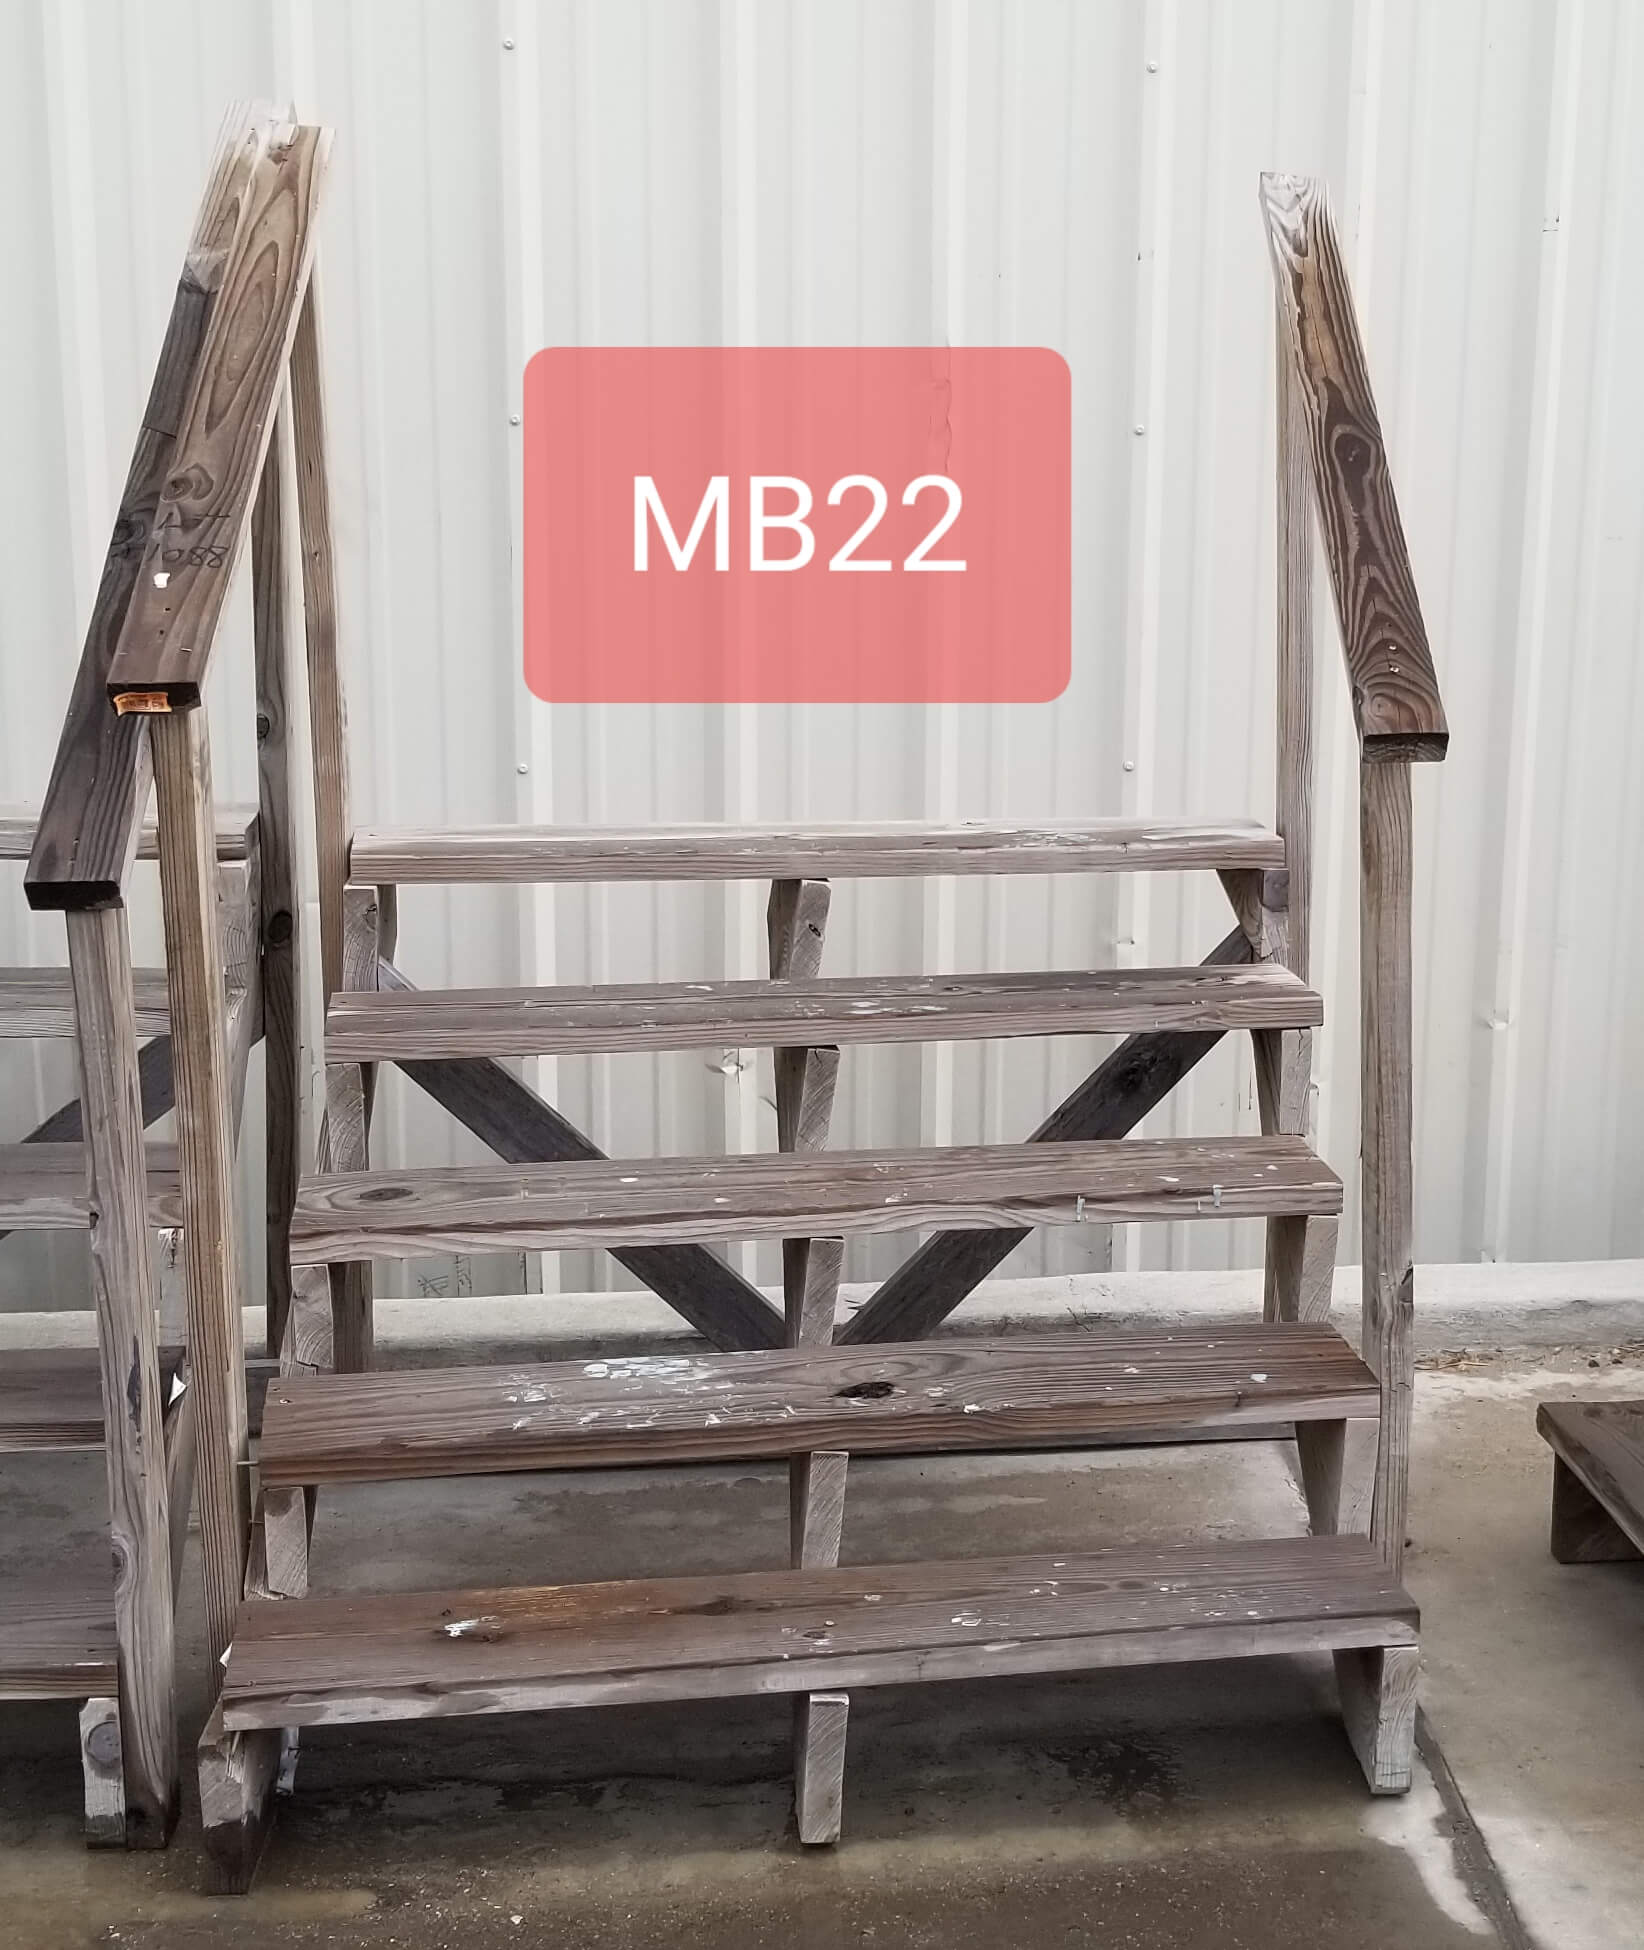 Mb So Mb 22 53 X 35 X 50 Wood Texas Iron And Metal